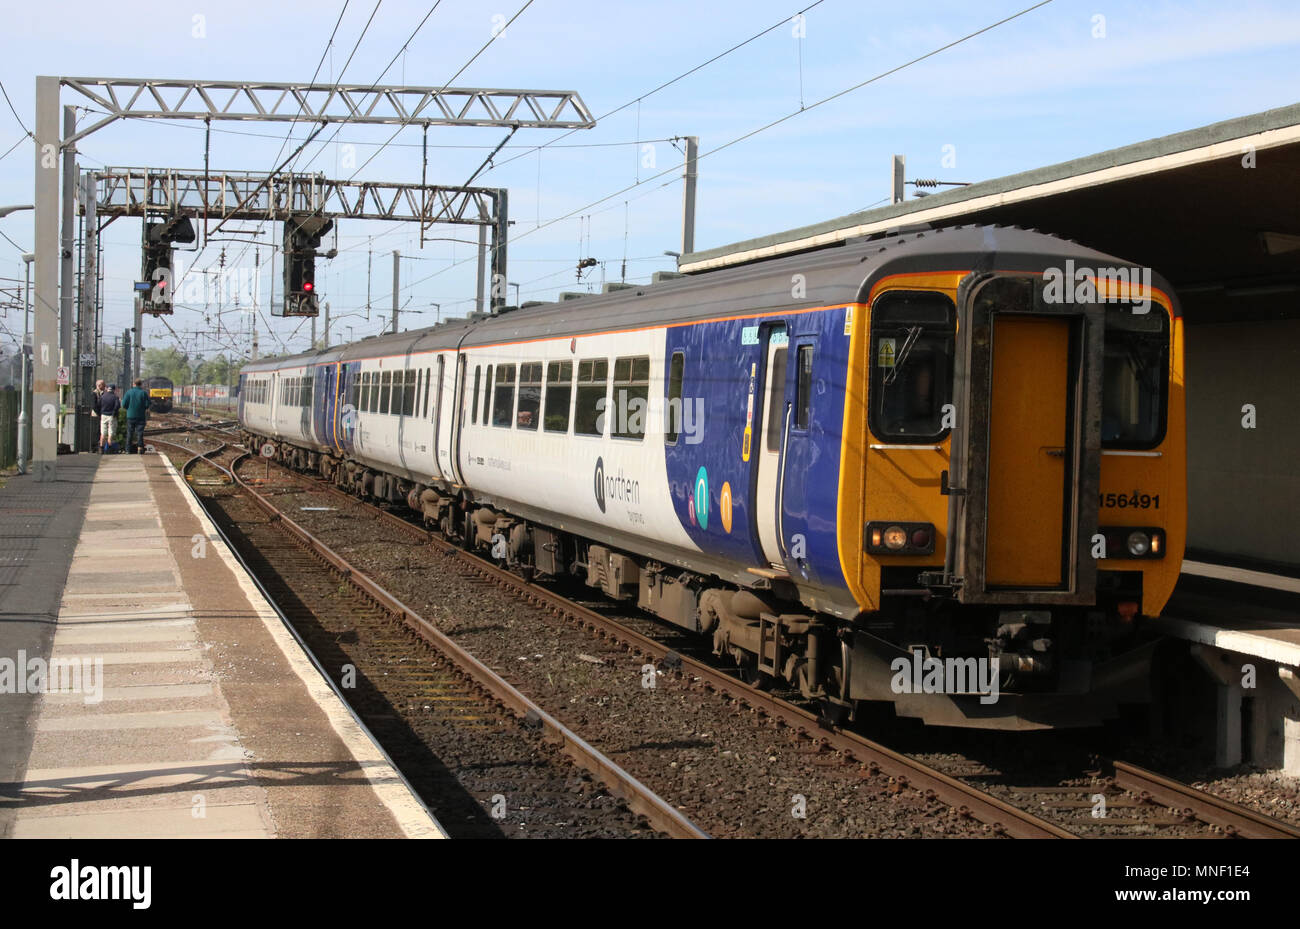 Two class 156 diesel multiple units in Northern livery entering Carnforth railway station platform 2 with a passenger train to Barrow-in-Furness. - Stock Image